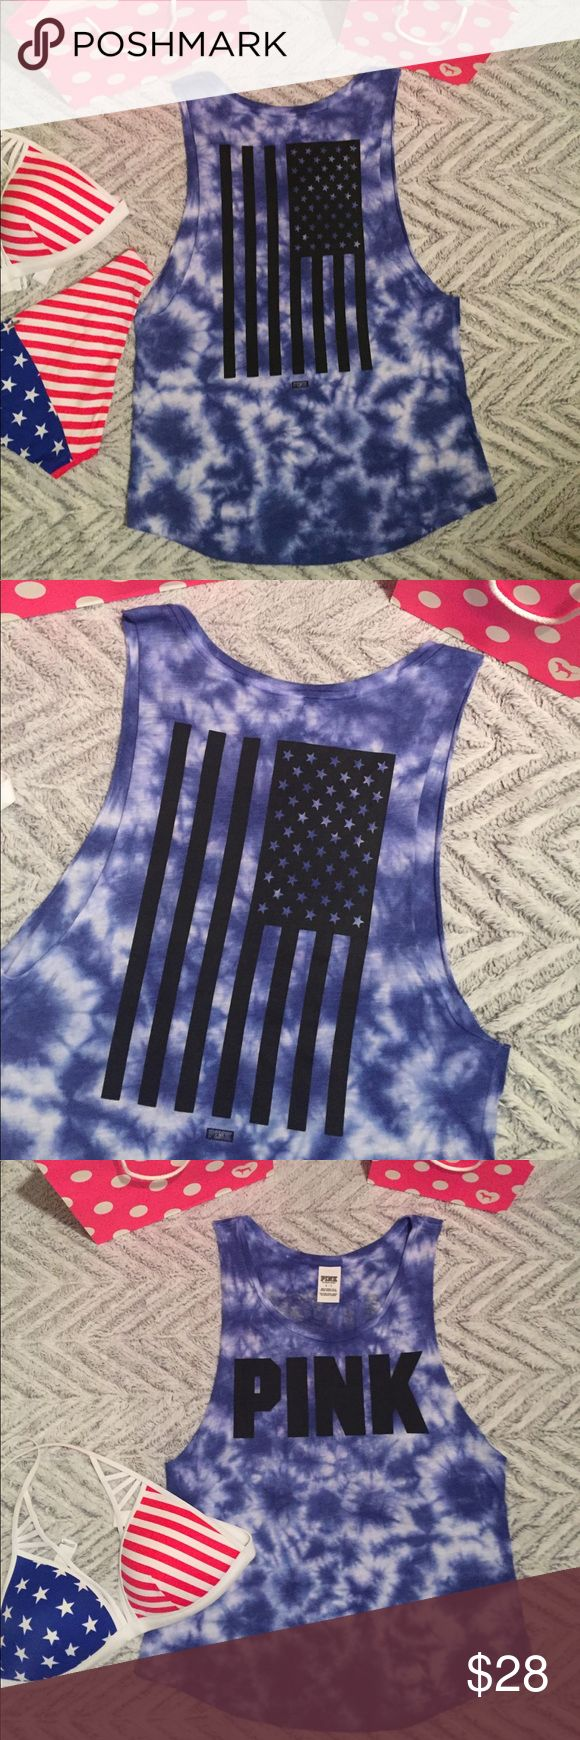 Victoria's Secret Pink Americana Tank Top VS Pink • Americana Print Tank Top • Blue Tie Dye Coloring • Large Flag graphic on back • Size Small - oversized • Perfect for celebrating the Fourth of July! * ❤️ Bikini Listed separately * PINK Victoria's Secret Tops Tank Tops